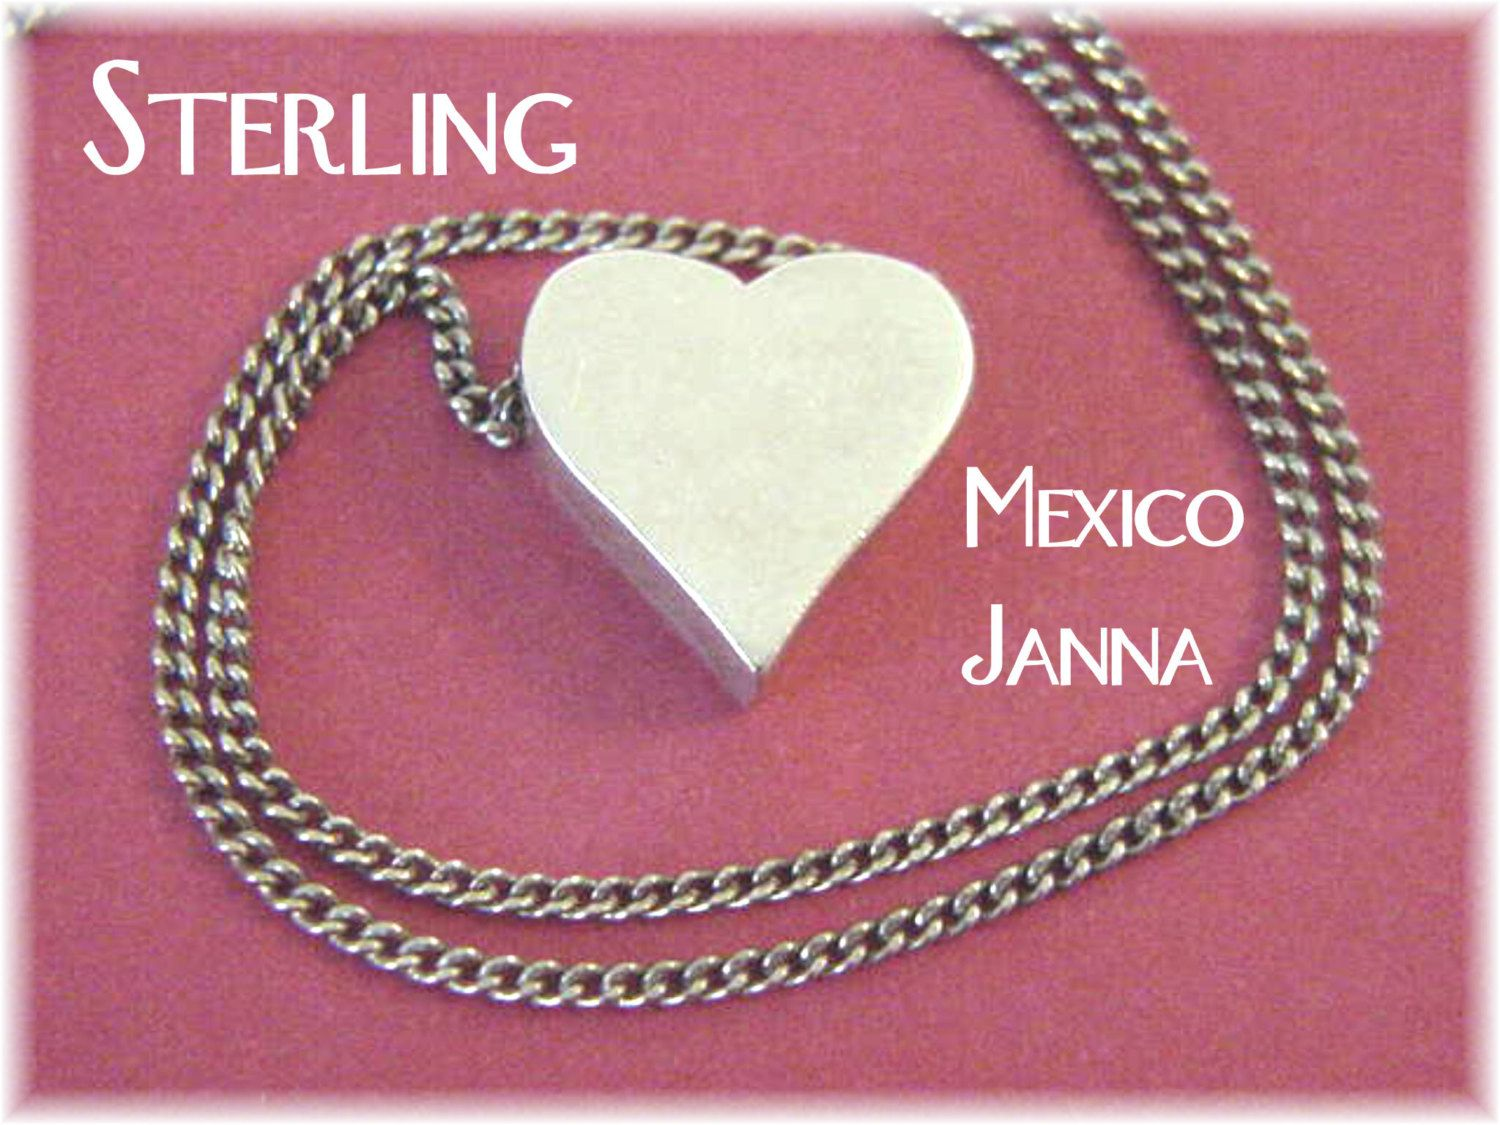 Janna Thomas - Mexican Sterling Silver Heart Pendant Necklace 1960s - Mexico Silversmith  - Great Gift Anniversary Love - FREE SHIPPING